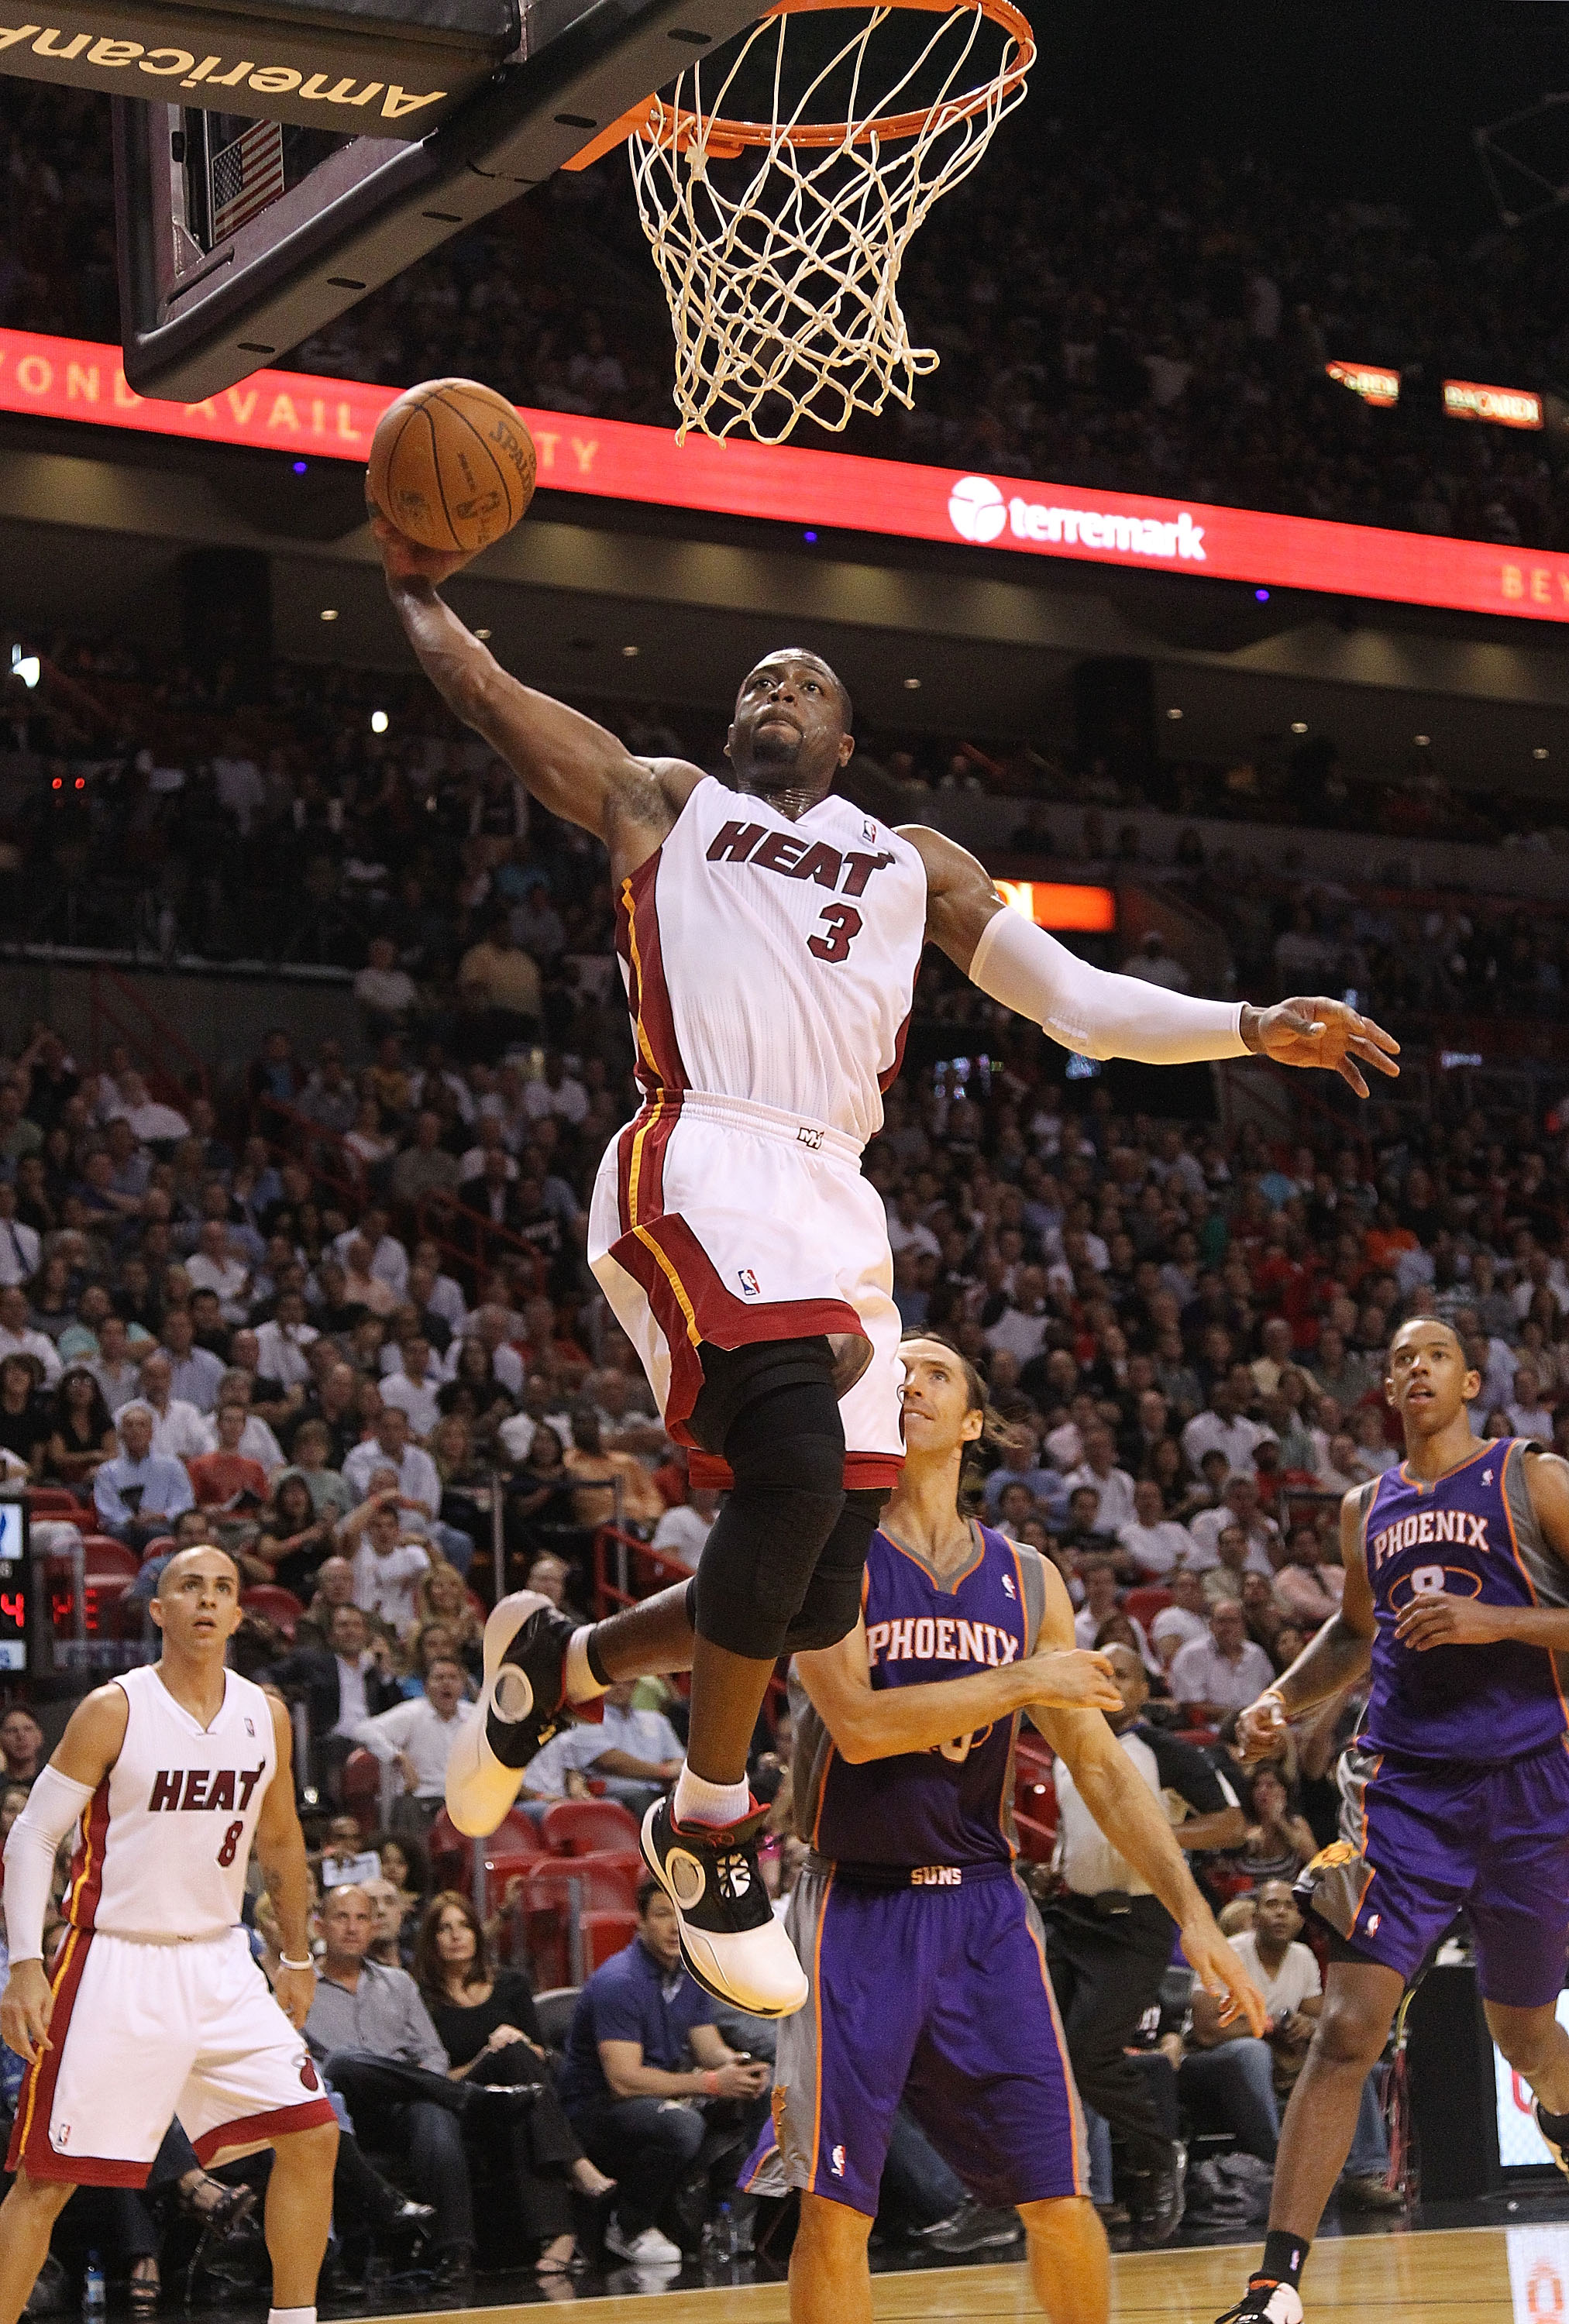 MIAMI - NOVEMBER 17:  Dwyane Wade #3 of the Miami Heat dunks during a game against the Phoenix Suns at American Airlines Arena on November 17, 2010 in Miami, Florida. NOTE TO USER: User expressly acknowledges and agrees that, by downloading and/or using t